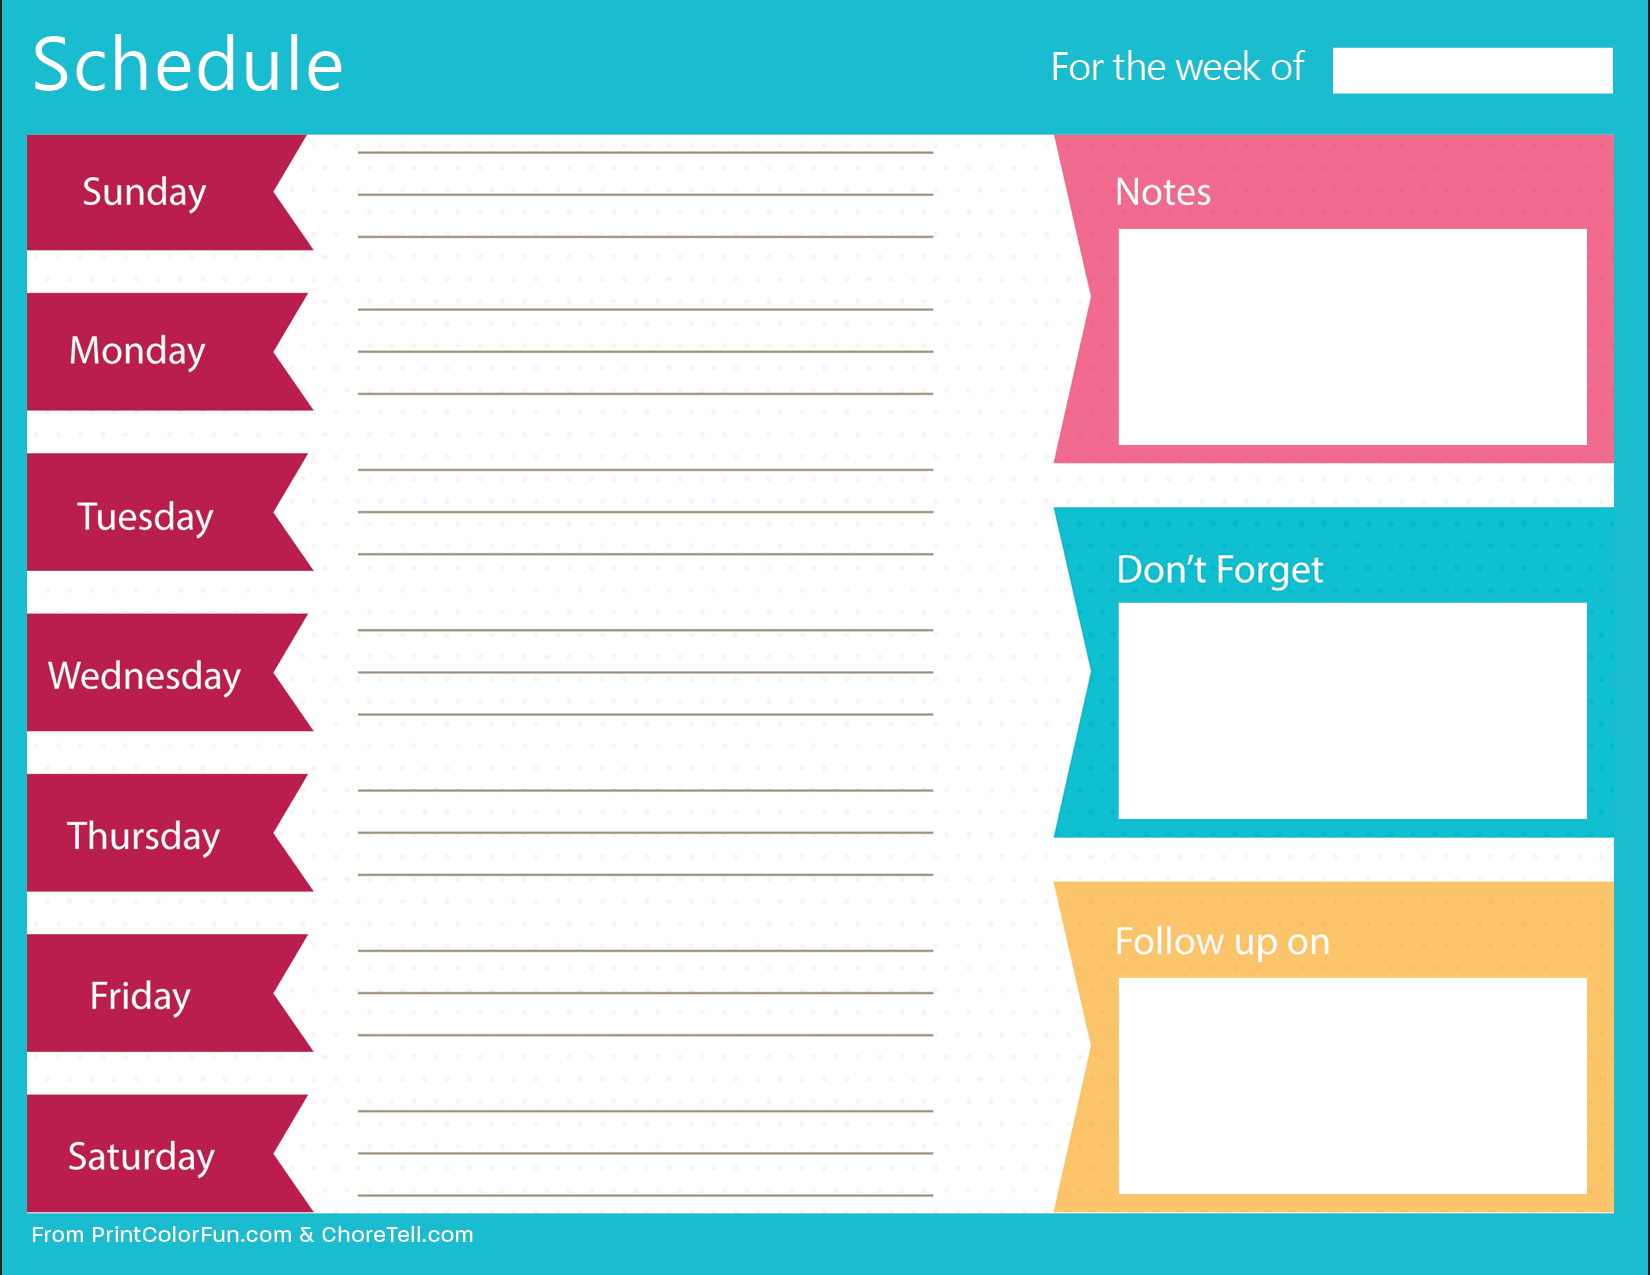 photograph regarding Weekly Schedule Printable known as Refreshing, formidable printable weekly plan planner - Cost-free